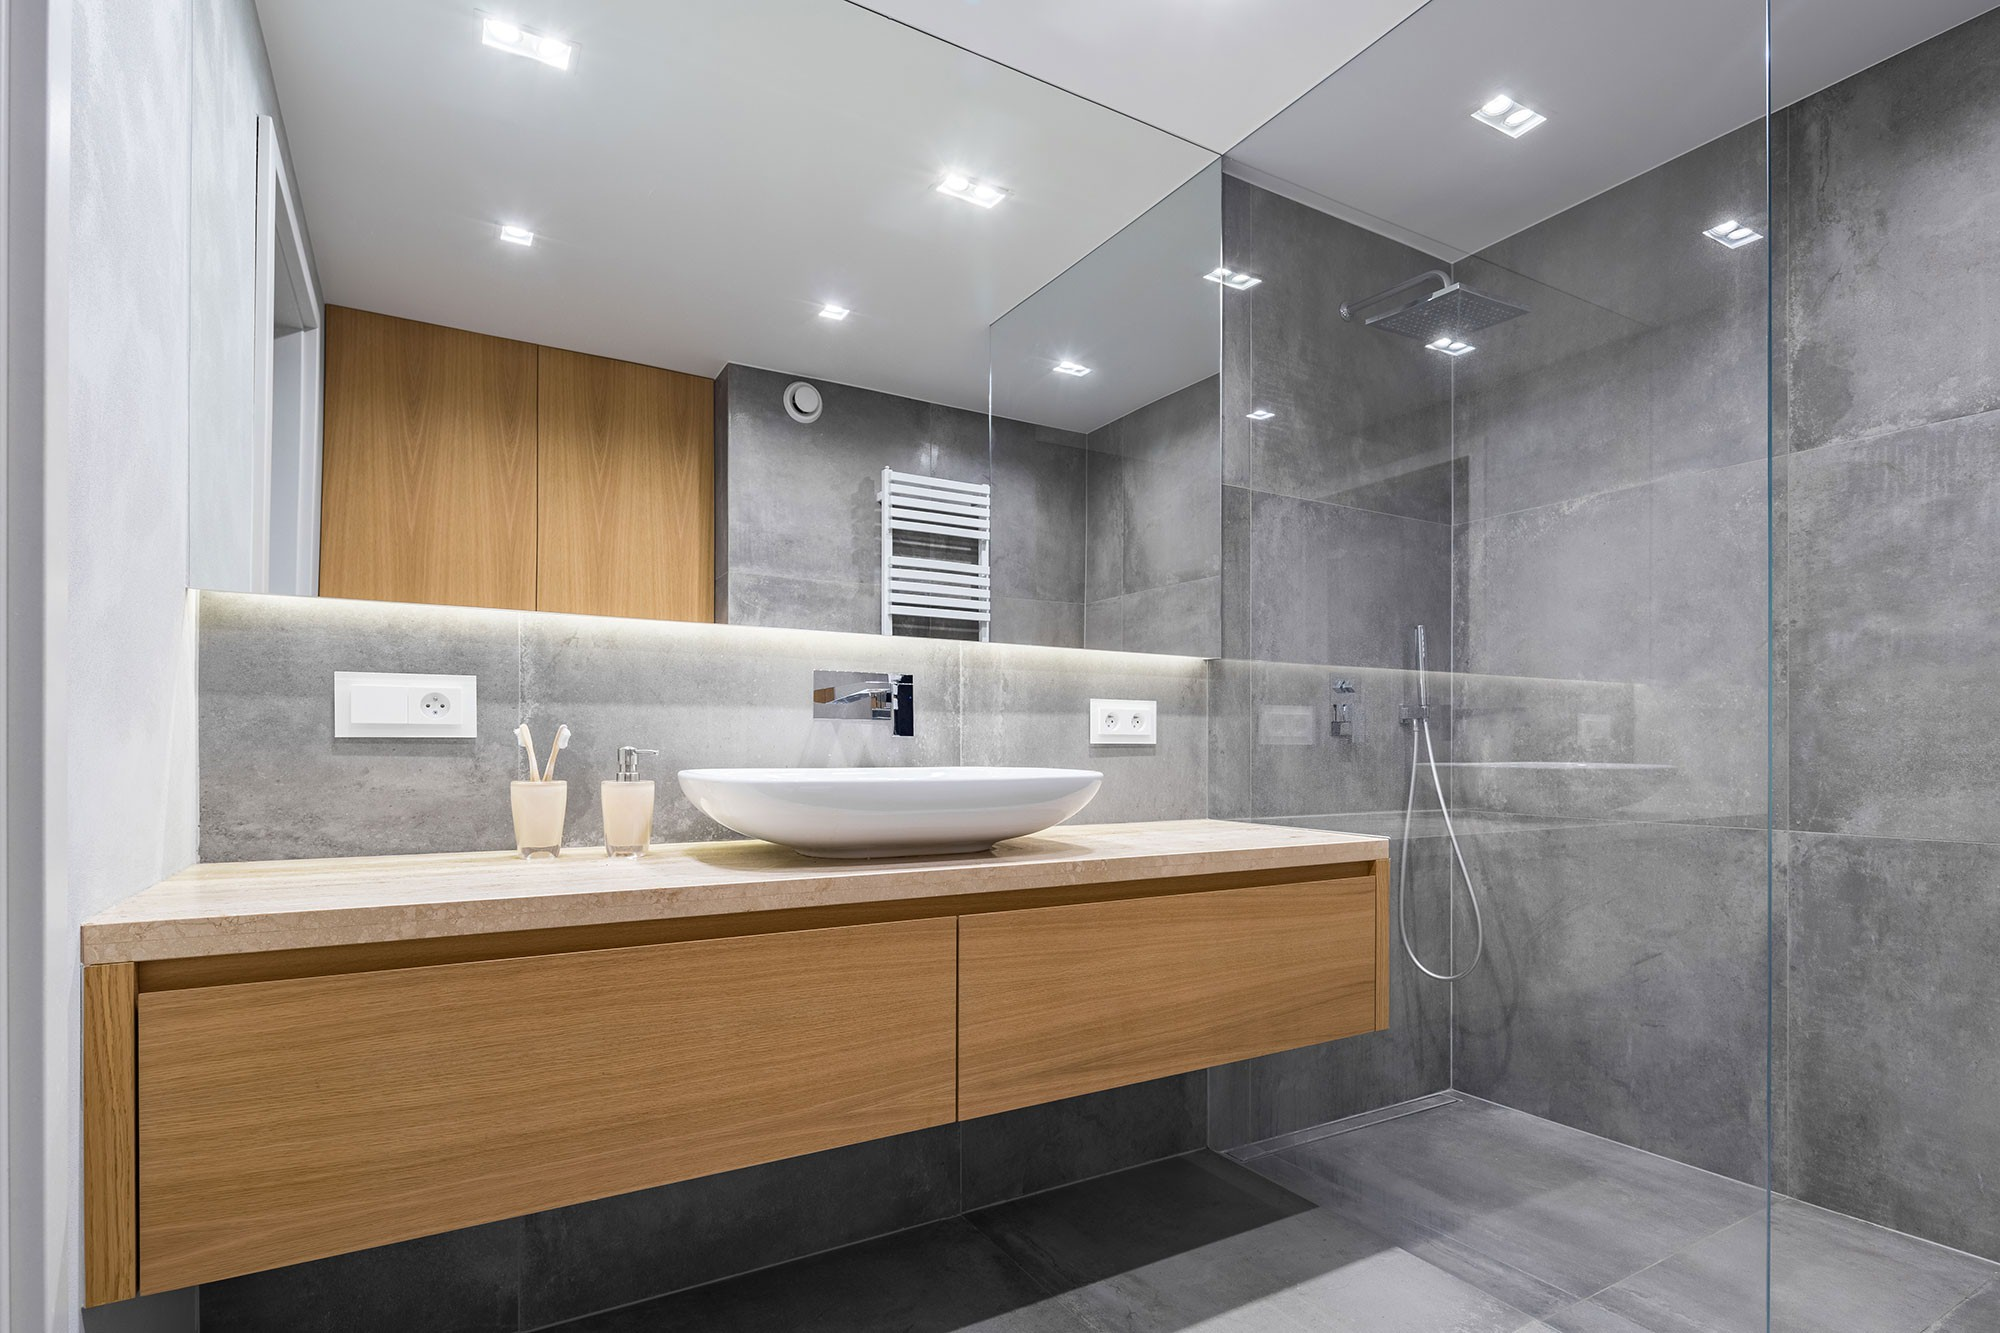 9 Most Ealing Grey Bathroom Ideas